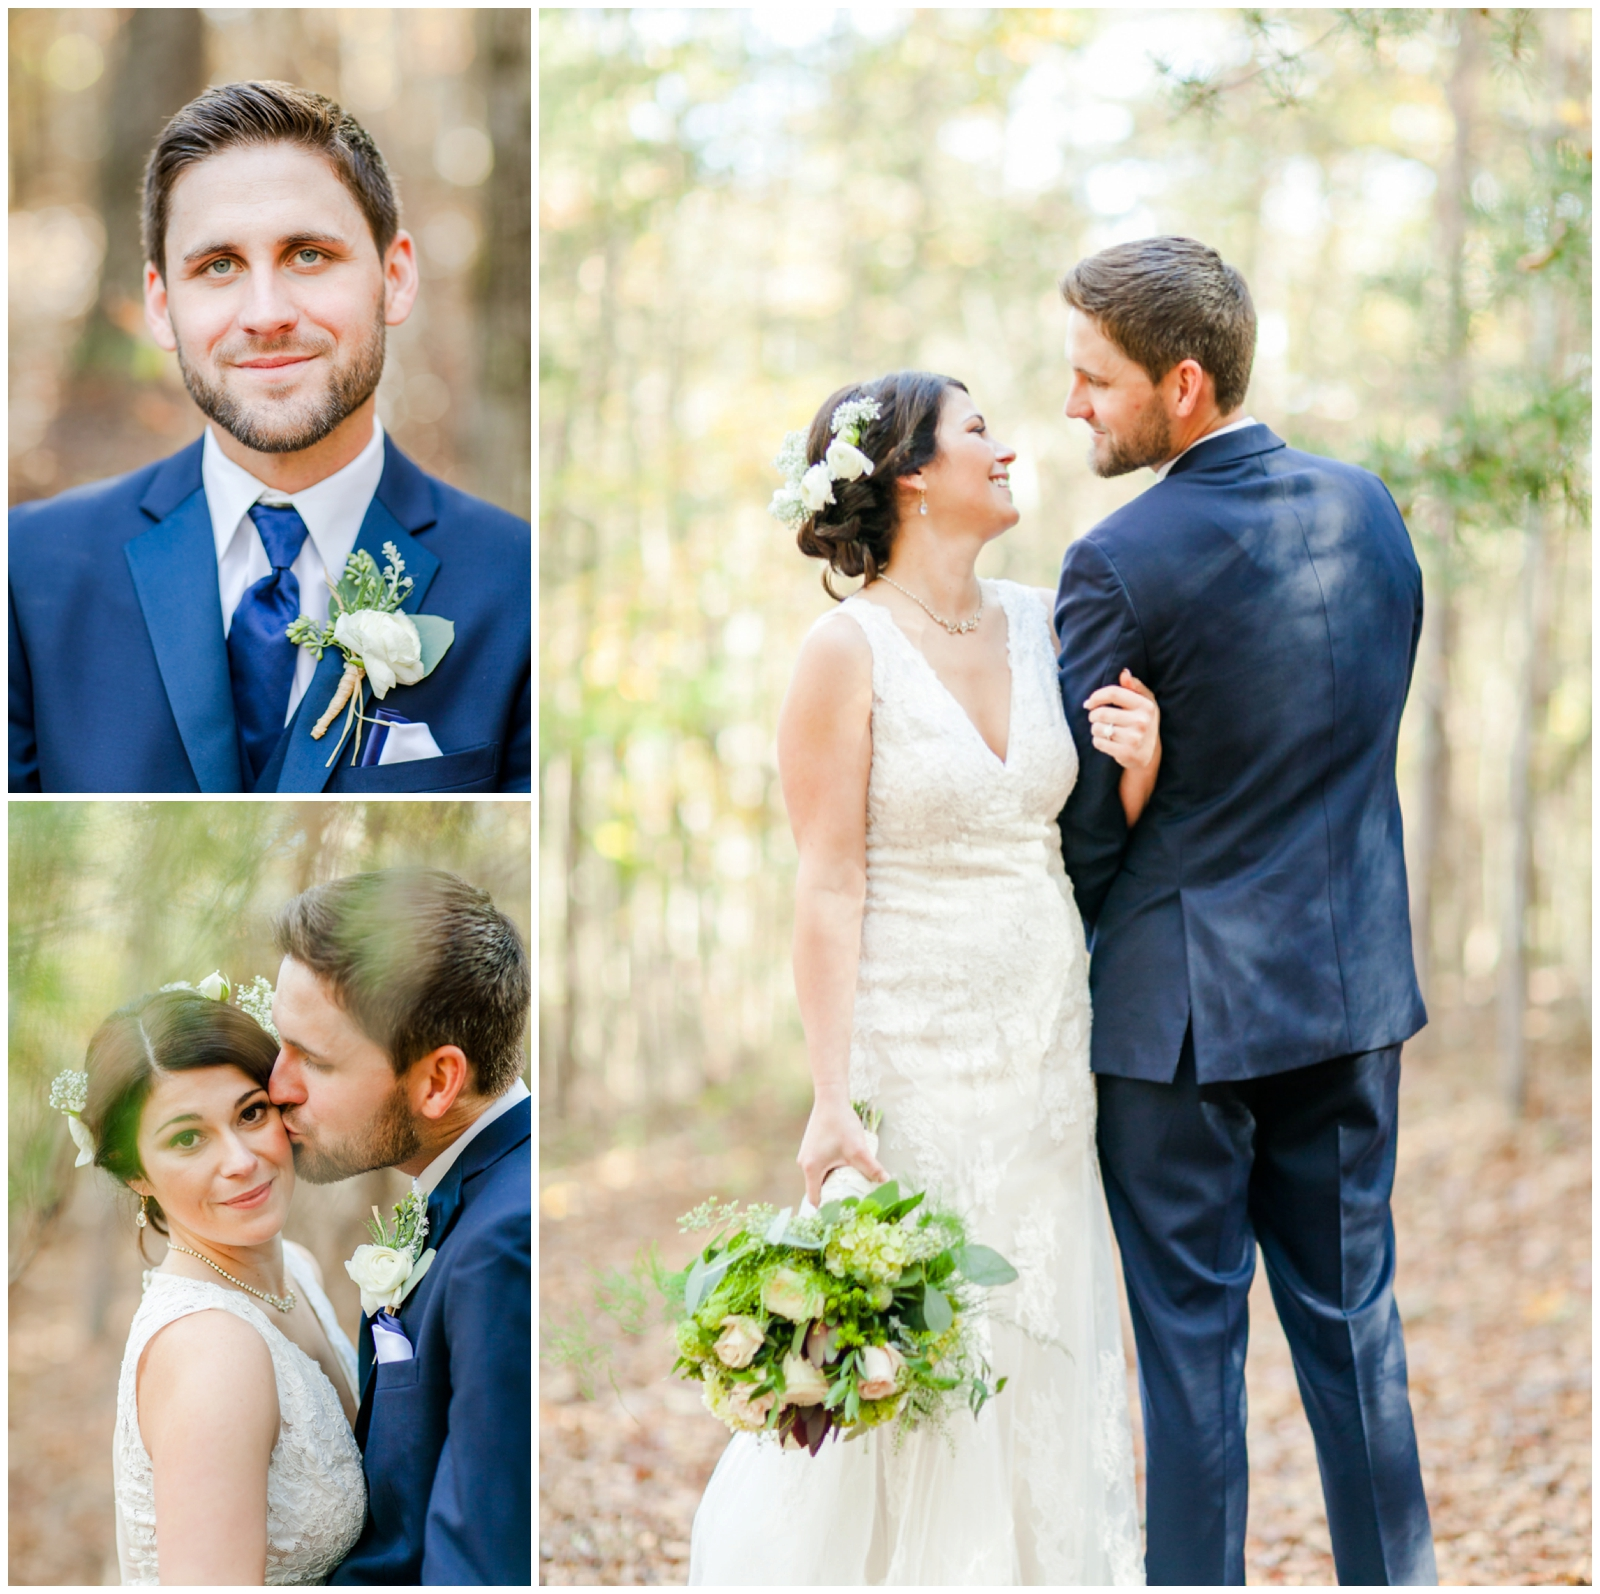 R&G_AtlantaWeddingPhotographer_WhiteOaksBarn_0017